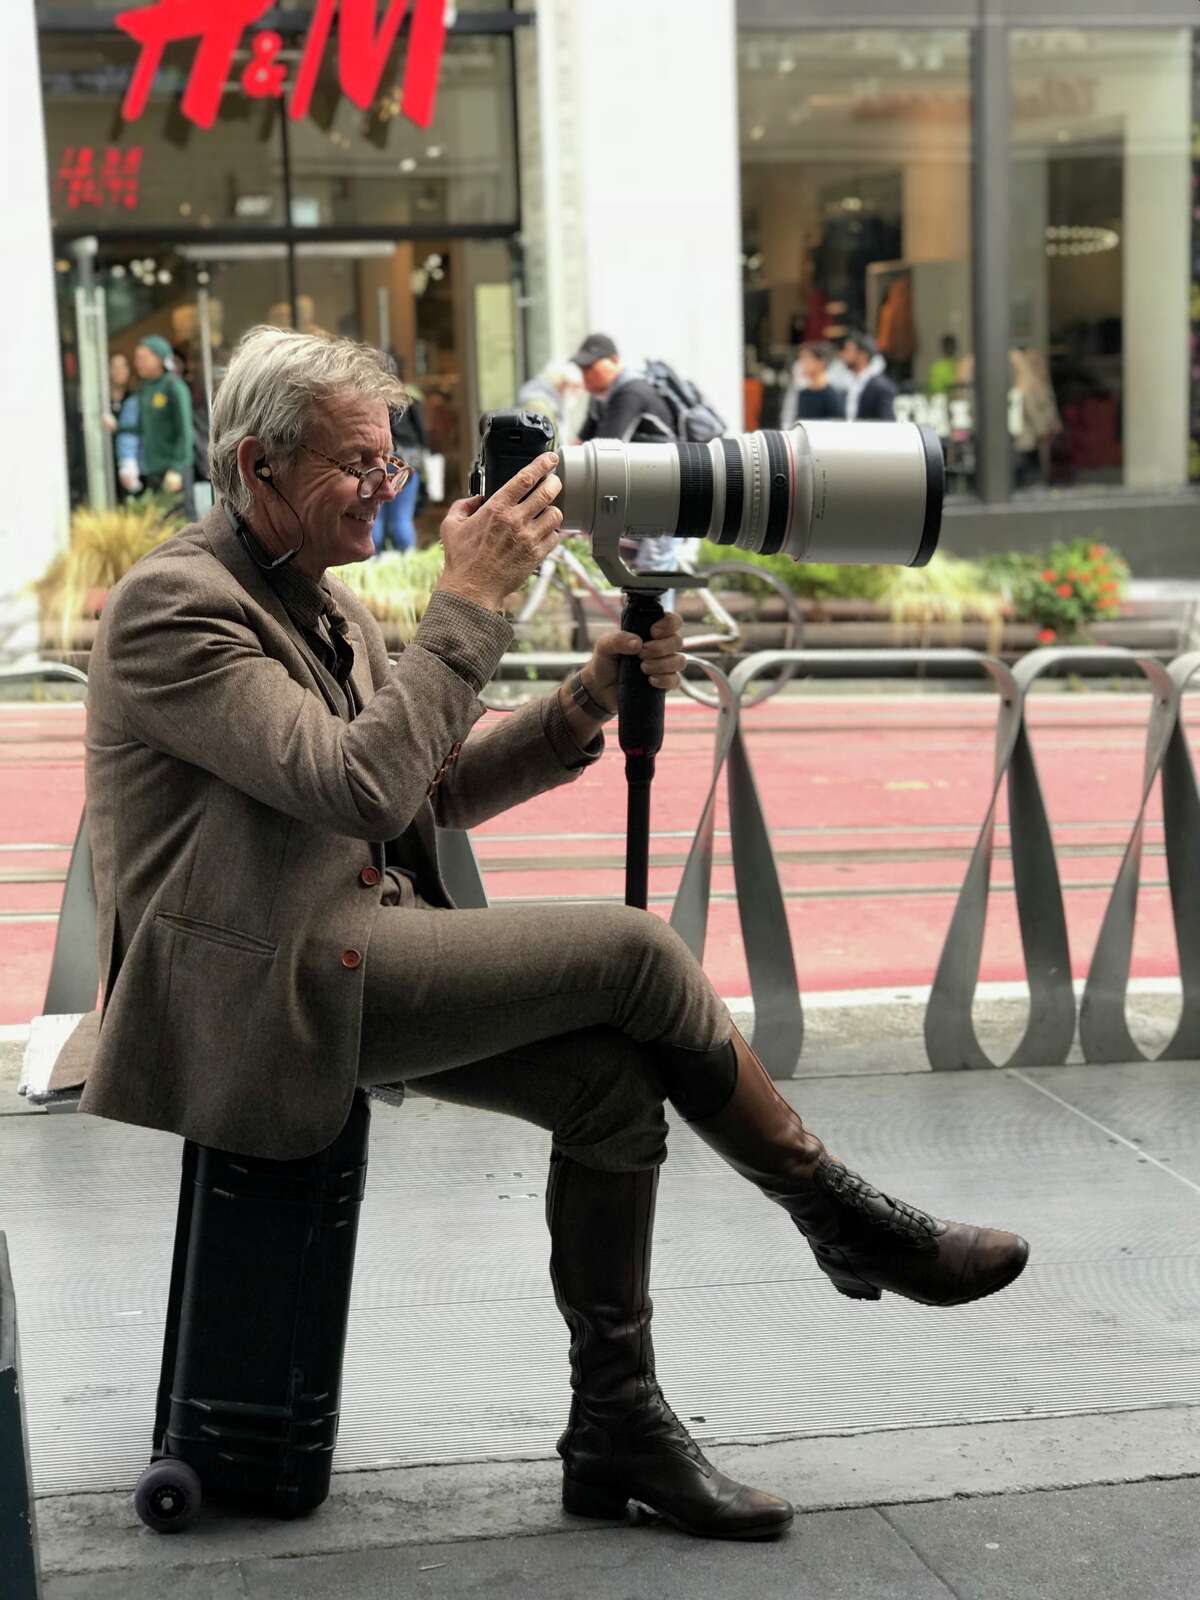 Photographer Maarten Van Dijk has taken images of San Francisco tourists and Bay Area locals for the past 10 years.Click ahead to see his favorite shots of tourists and locals in downtown SF through the years.